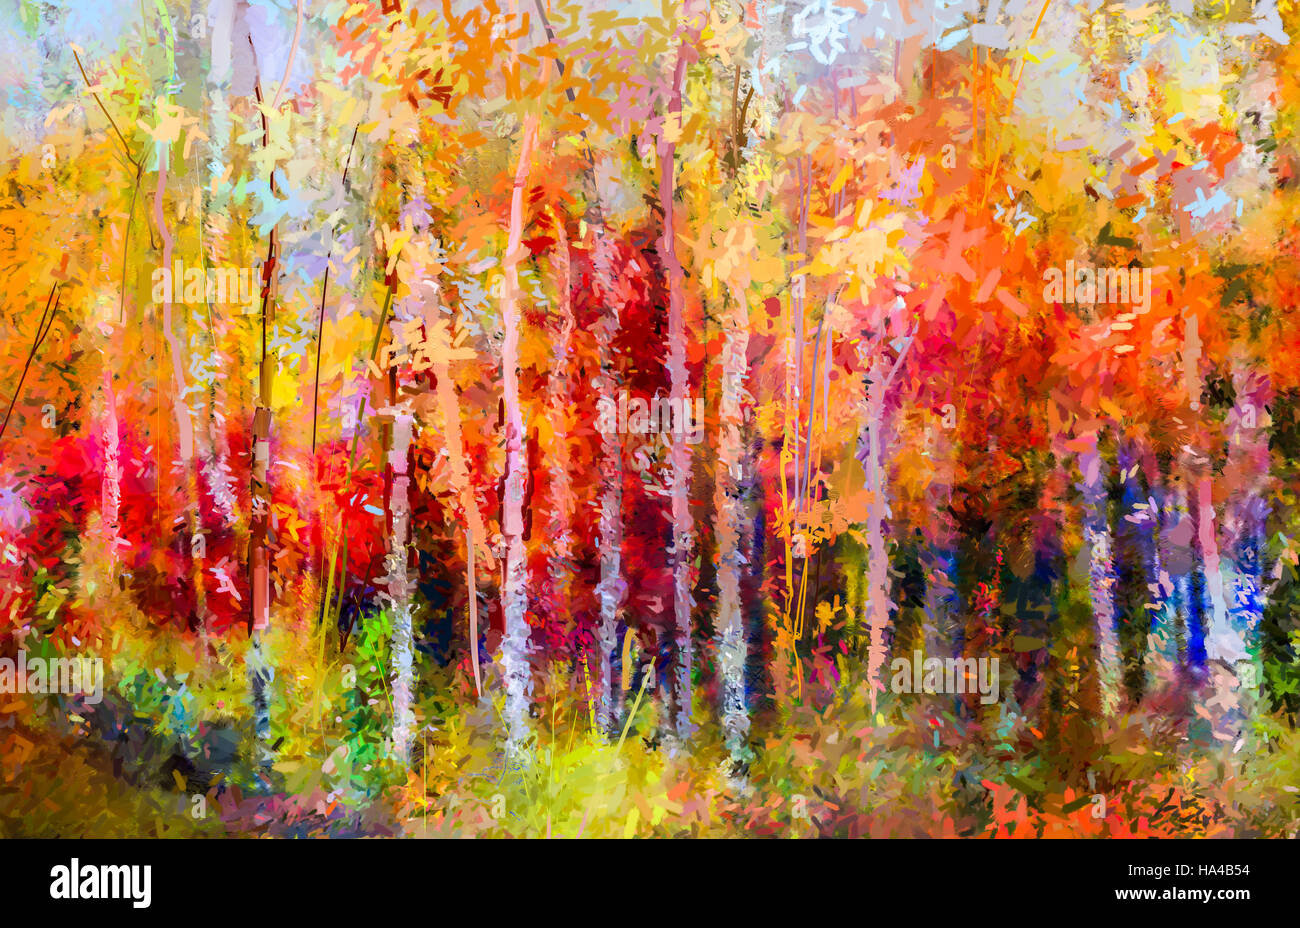 D Pine Forest Painting On Wood Canvas